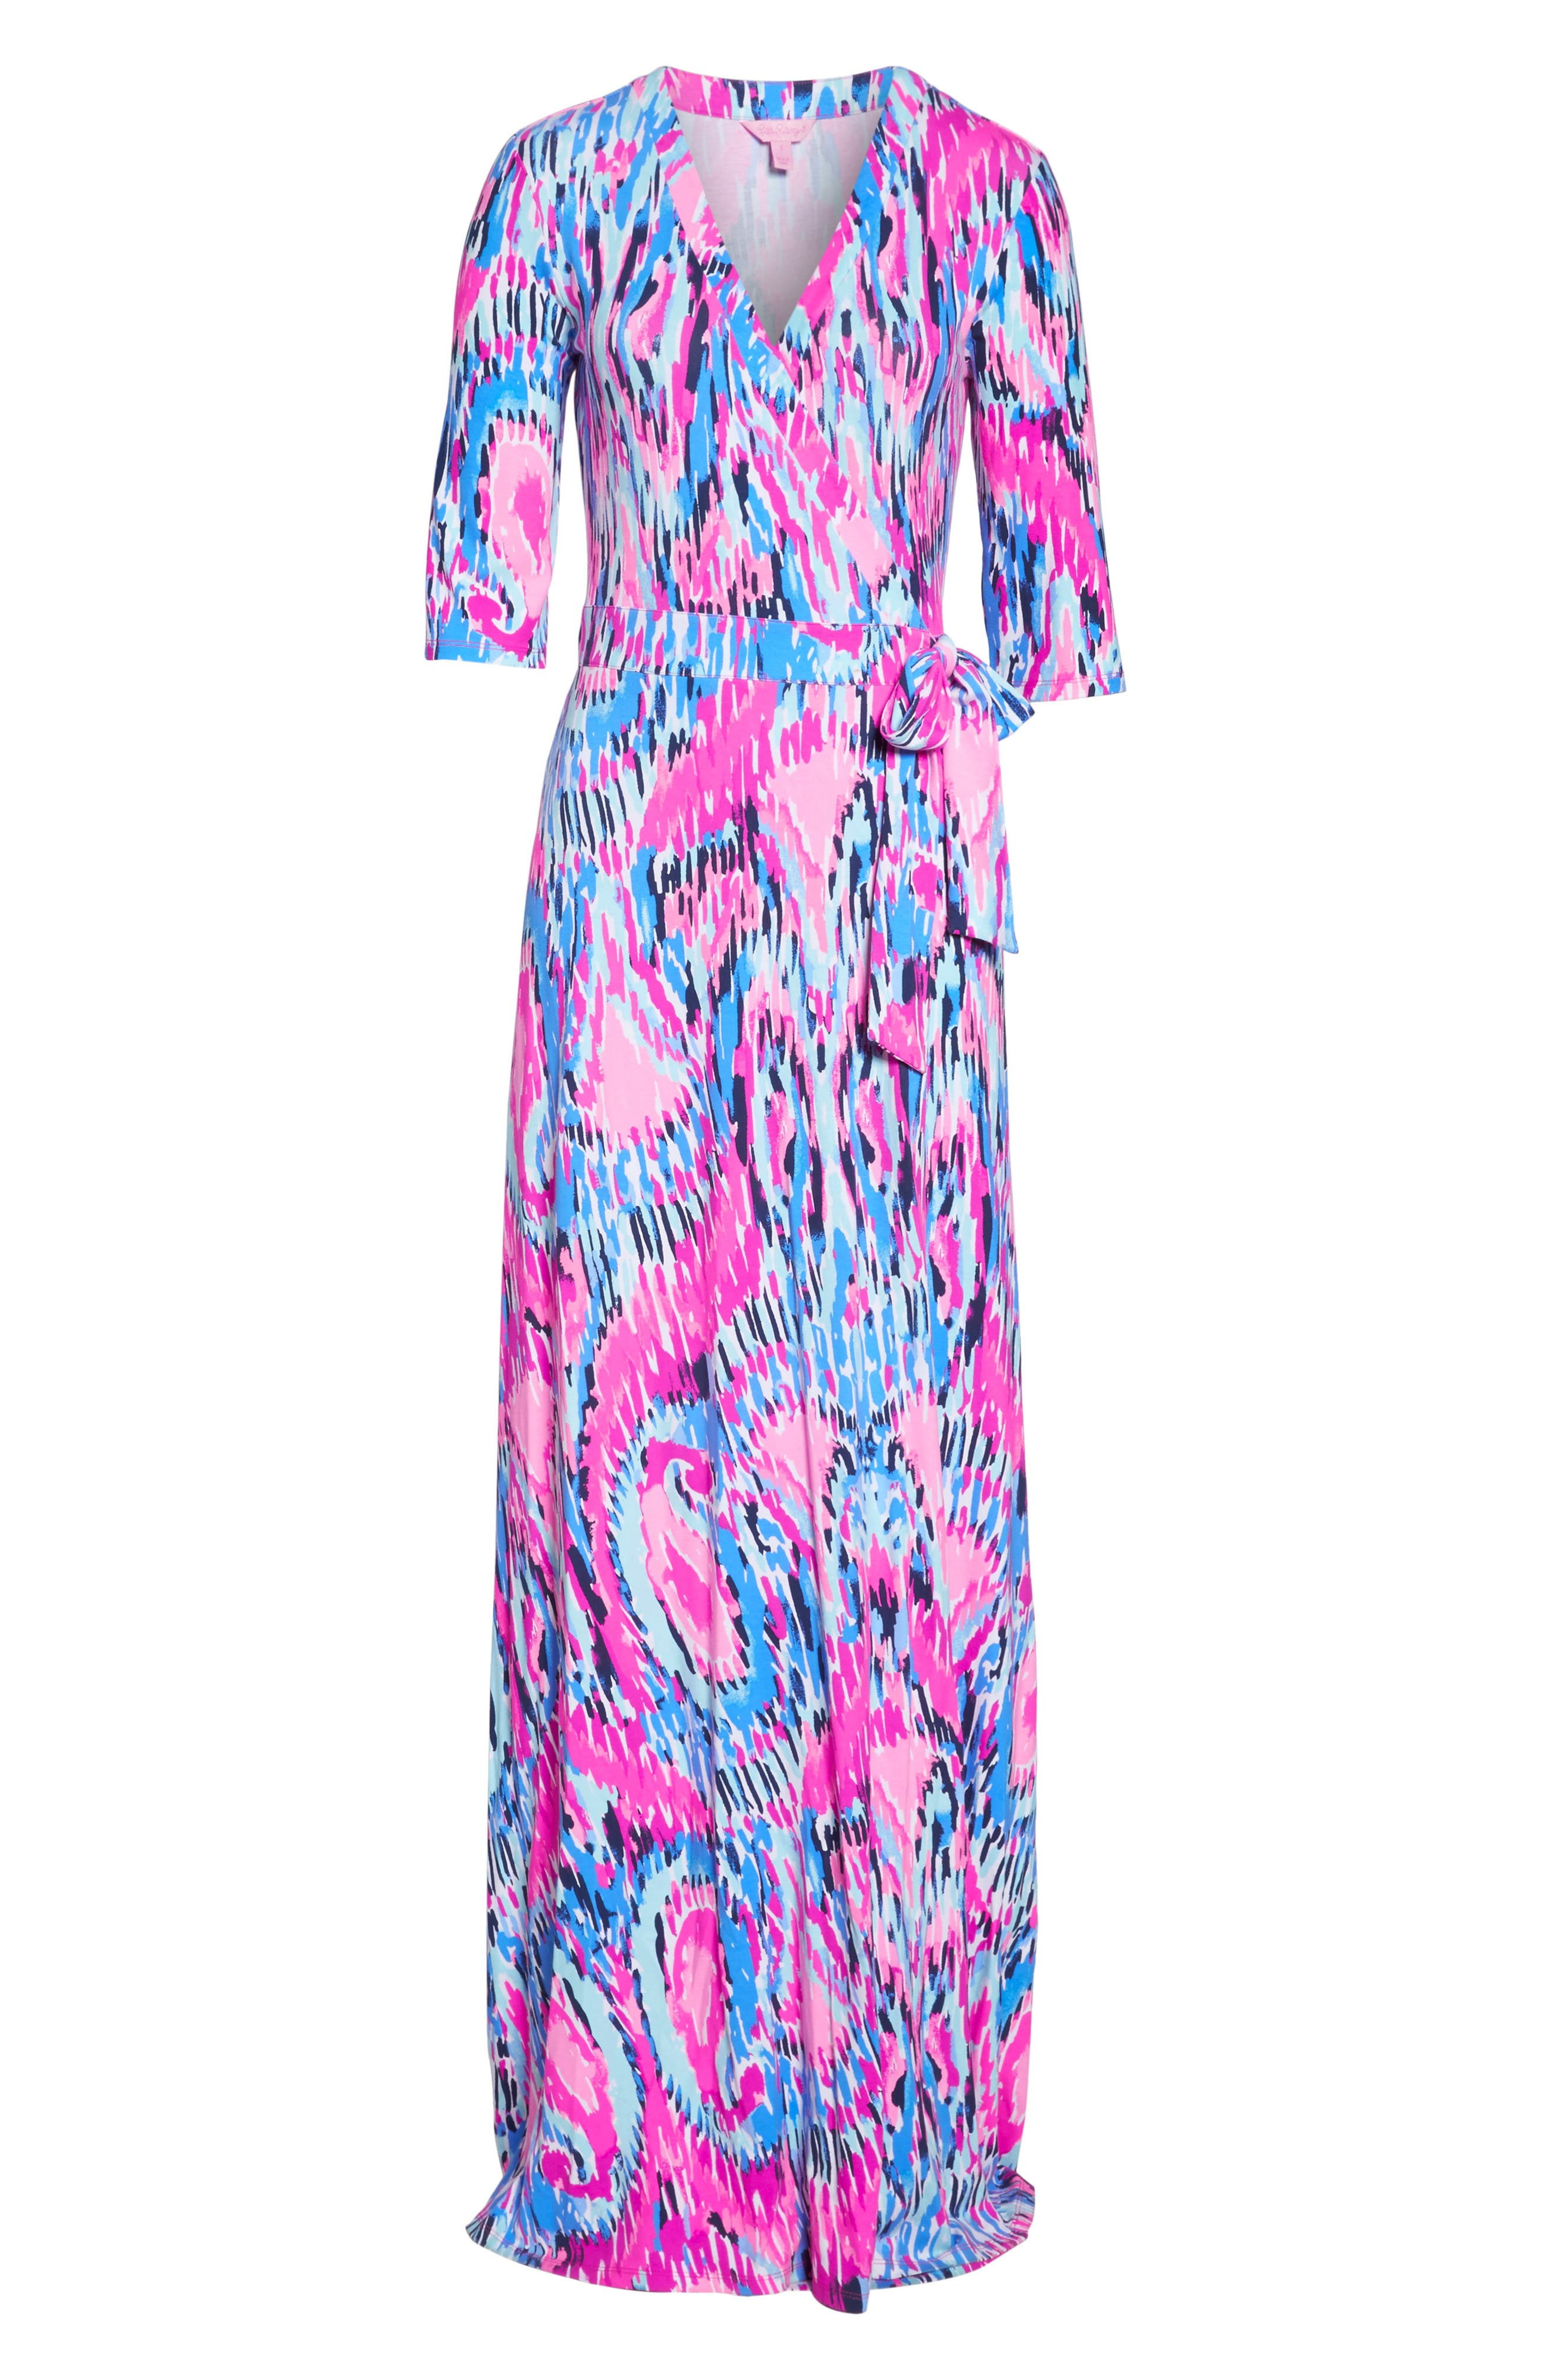 Marvista Wrap Maxi Dress,                             Alternate thumbnail 7, color,                             650